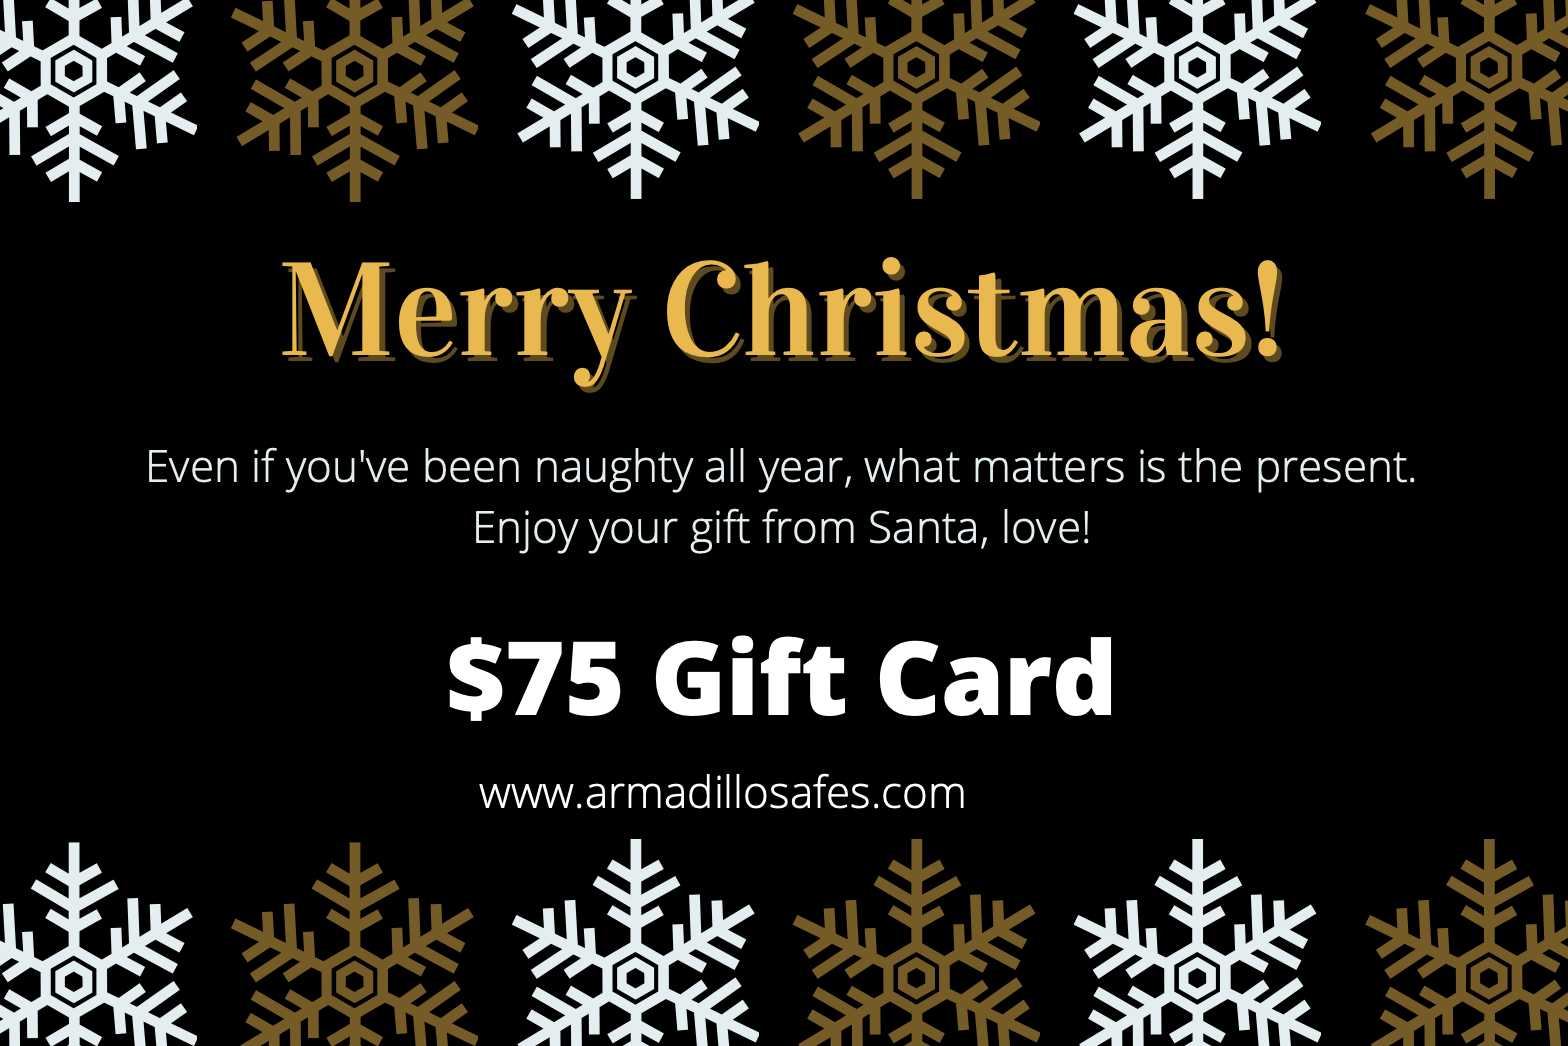 Armadillo Safe and Vault Christmas Gift Card Armadillo Safe and Vault